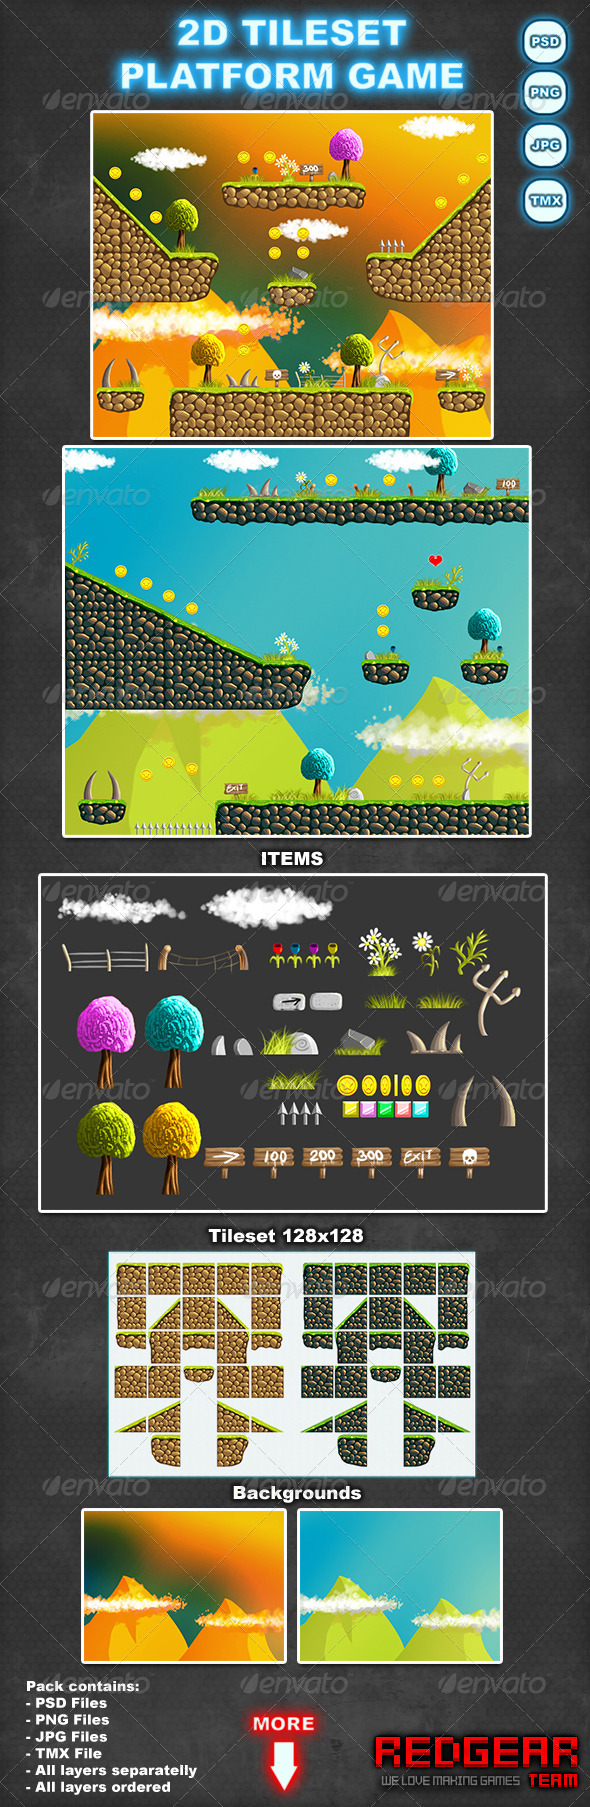 Pixel Art Game Tilesets from GraphicRiver